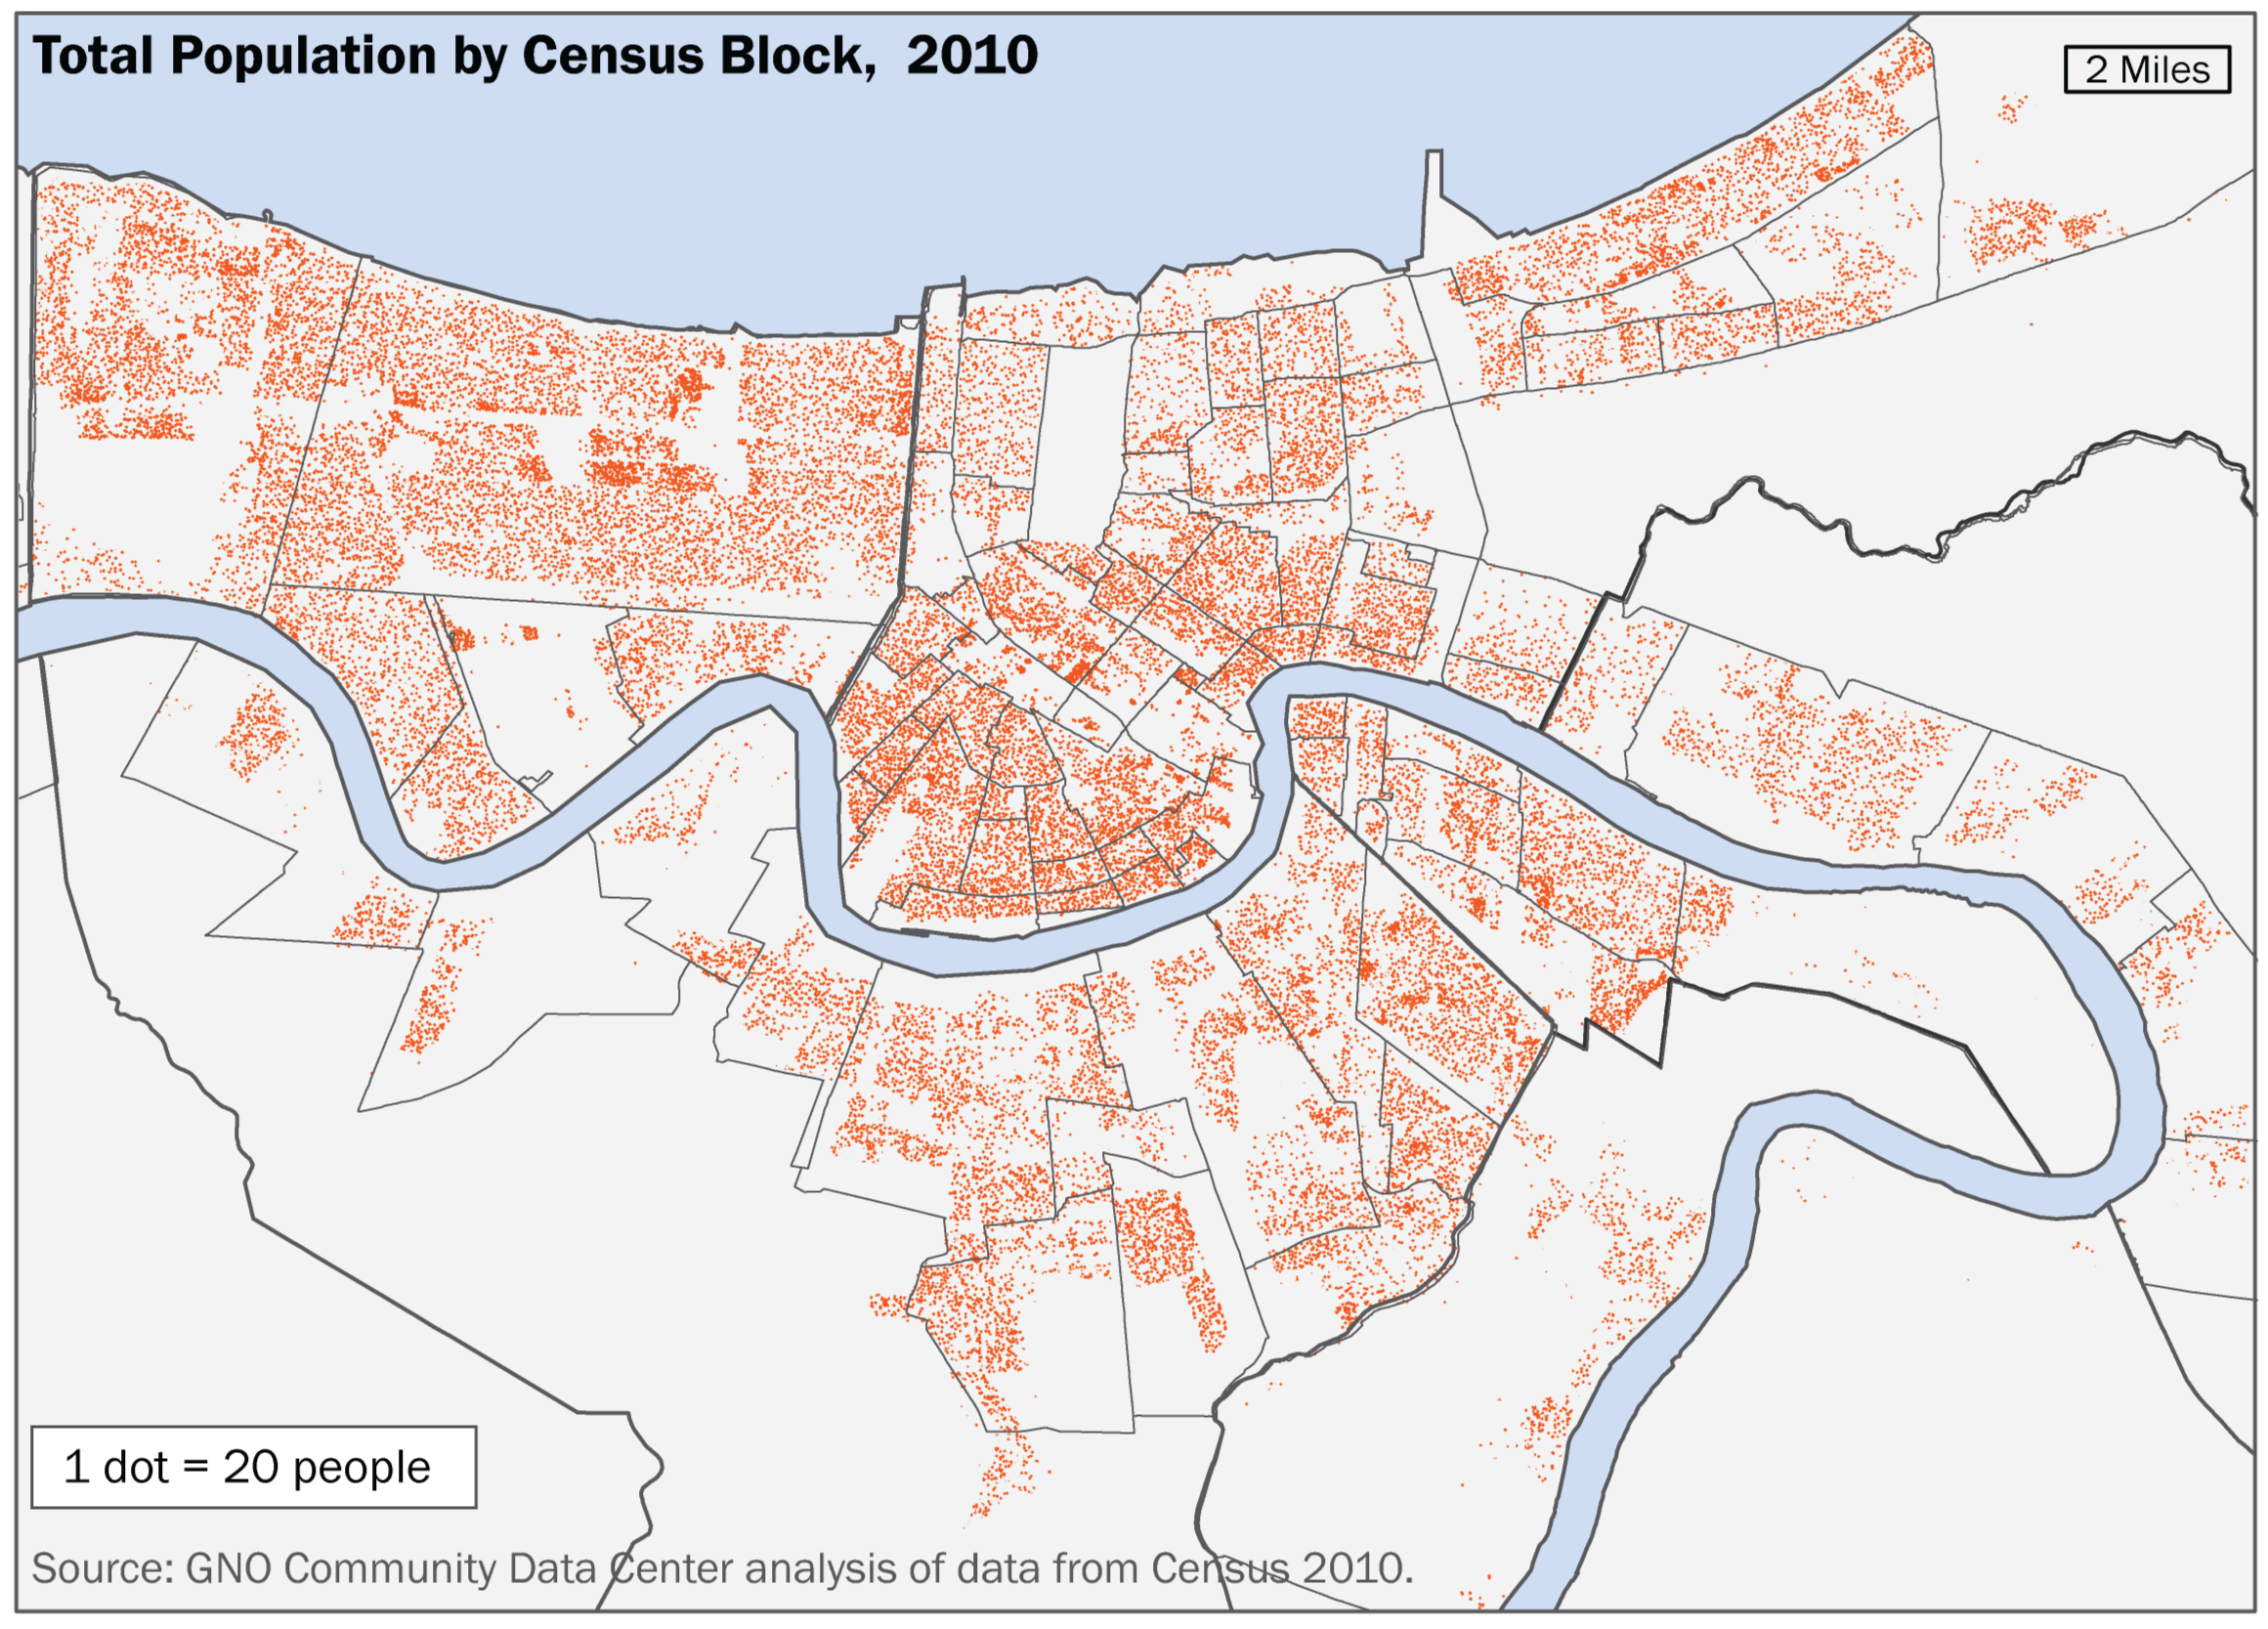 Shifts in Population and Loss of Children across the New Orleans Metro Area